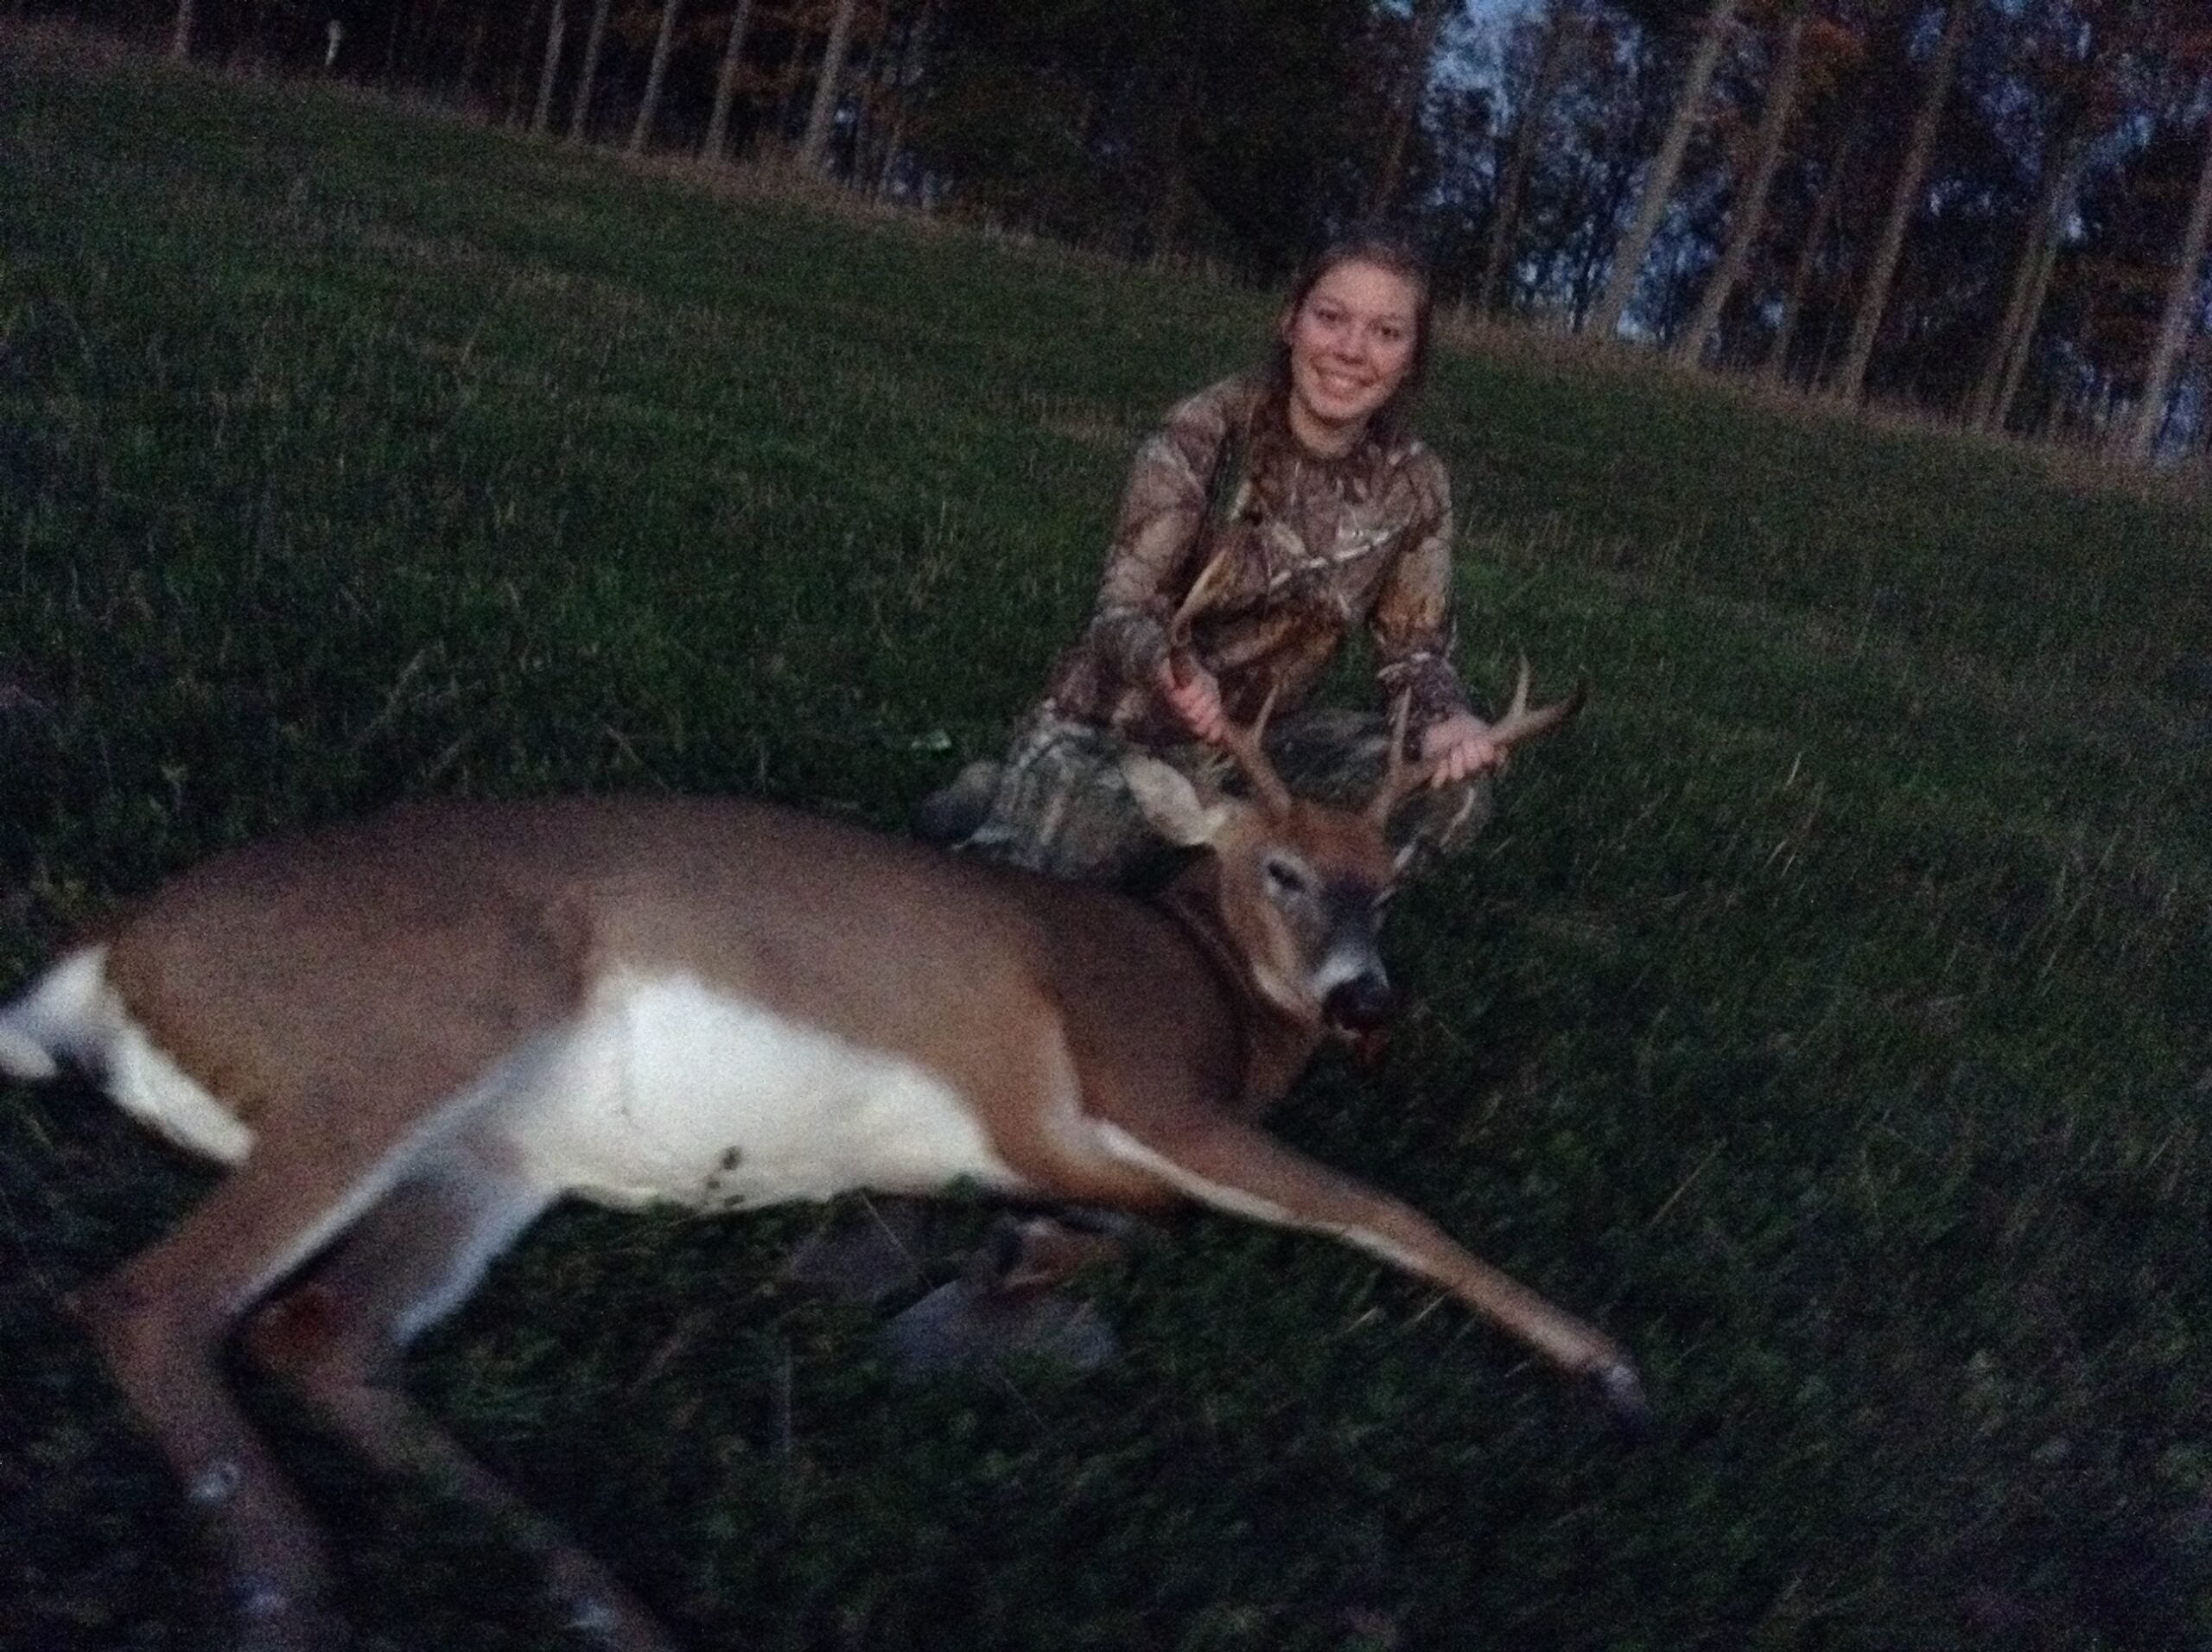 Buck Activity on the Rise in the Northeast